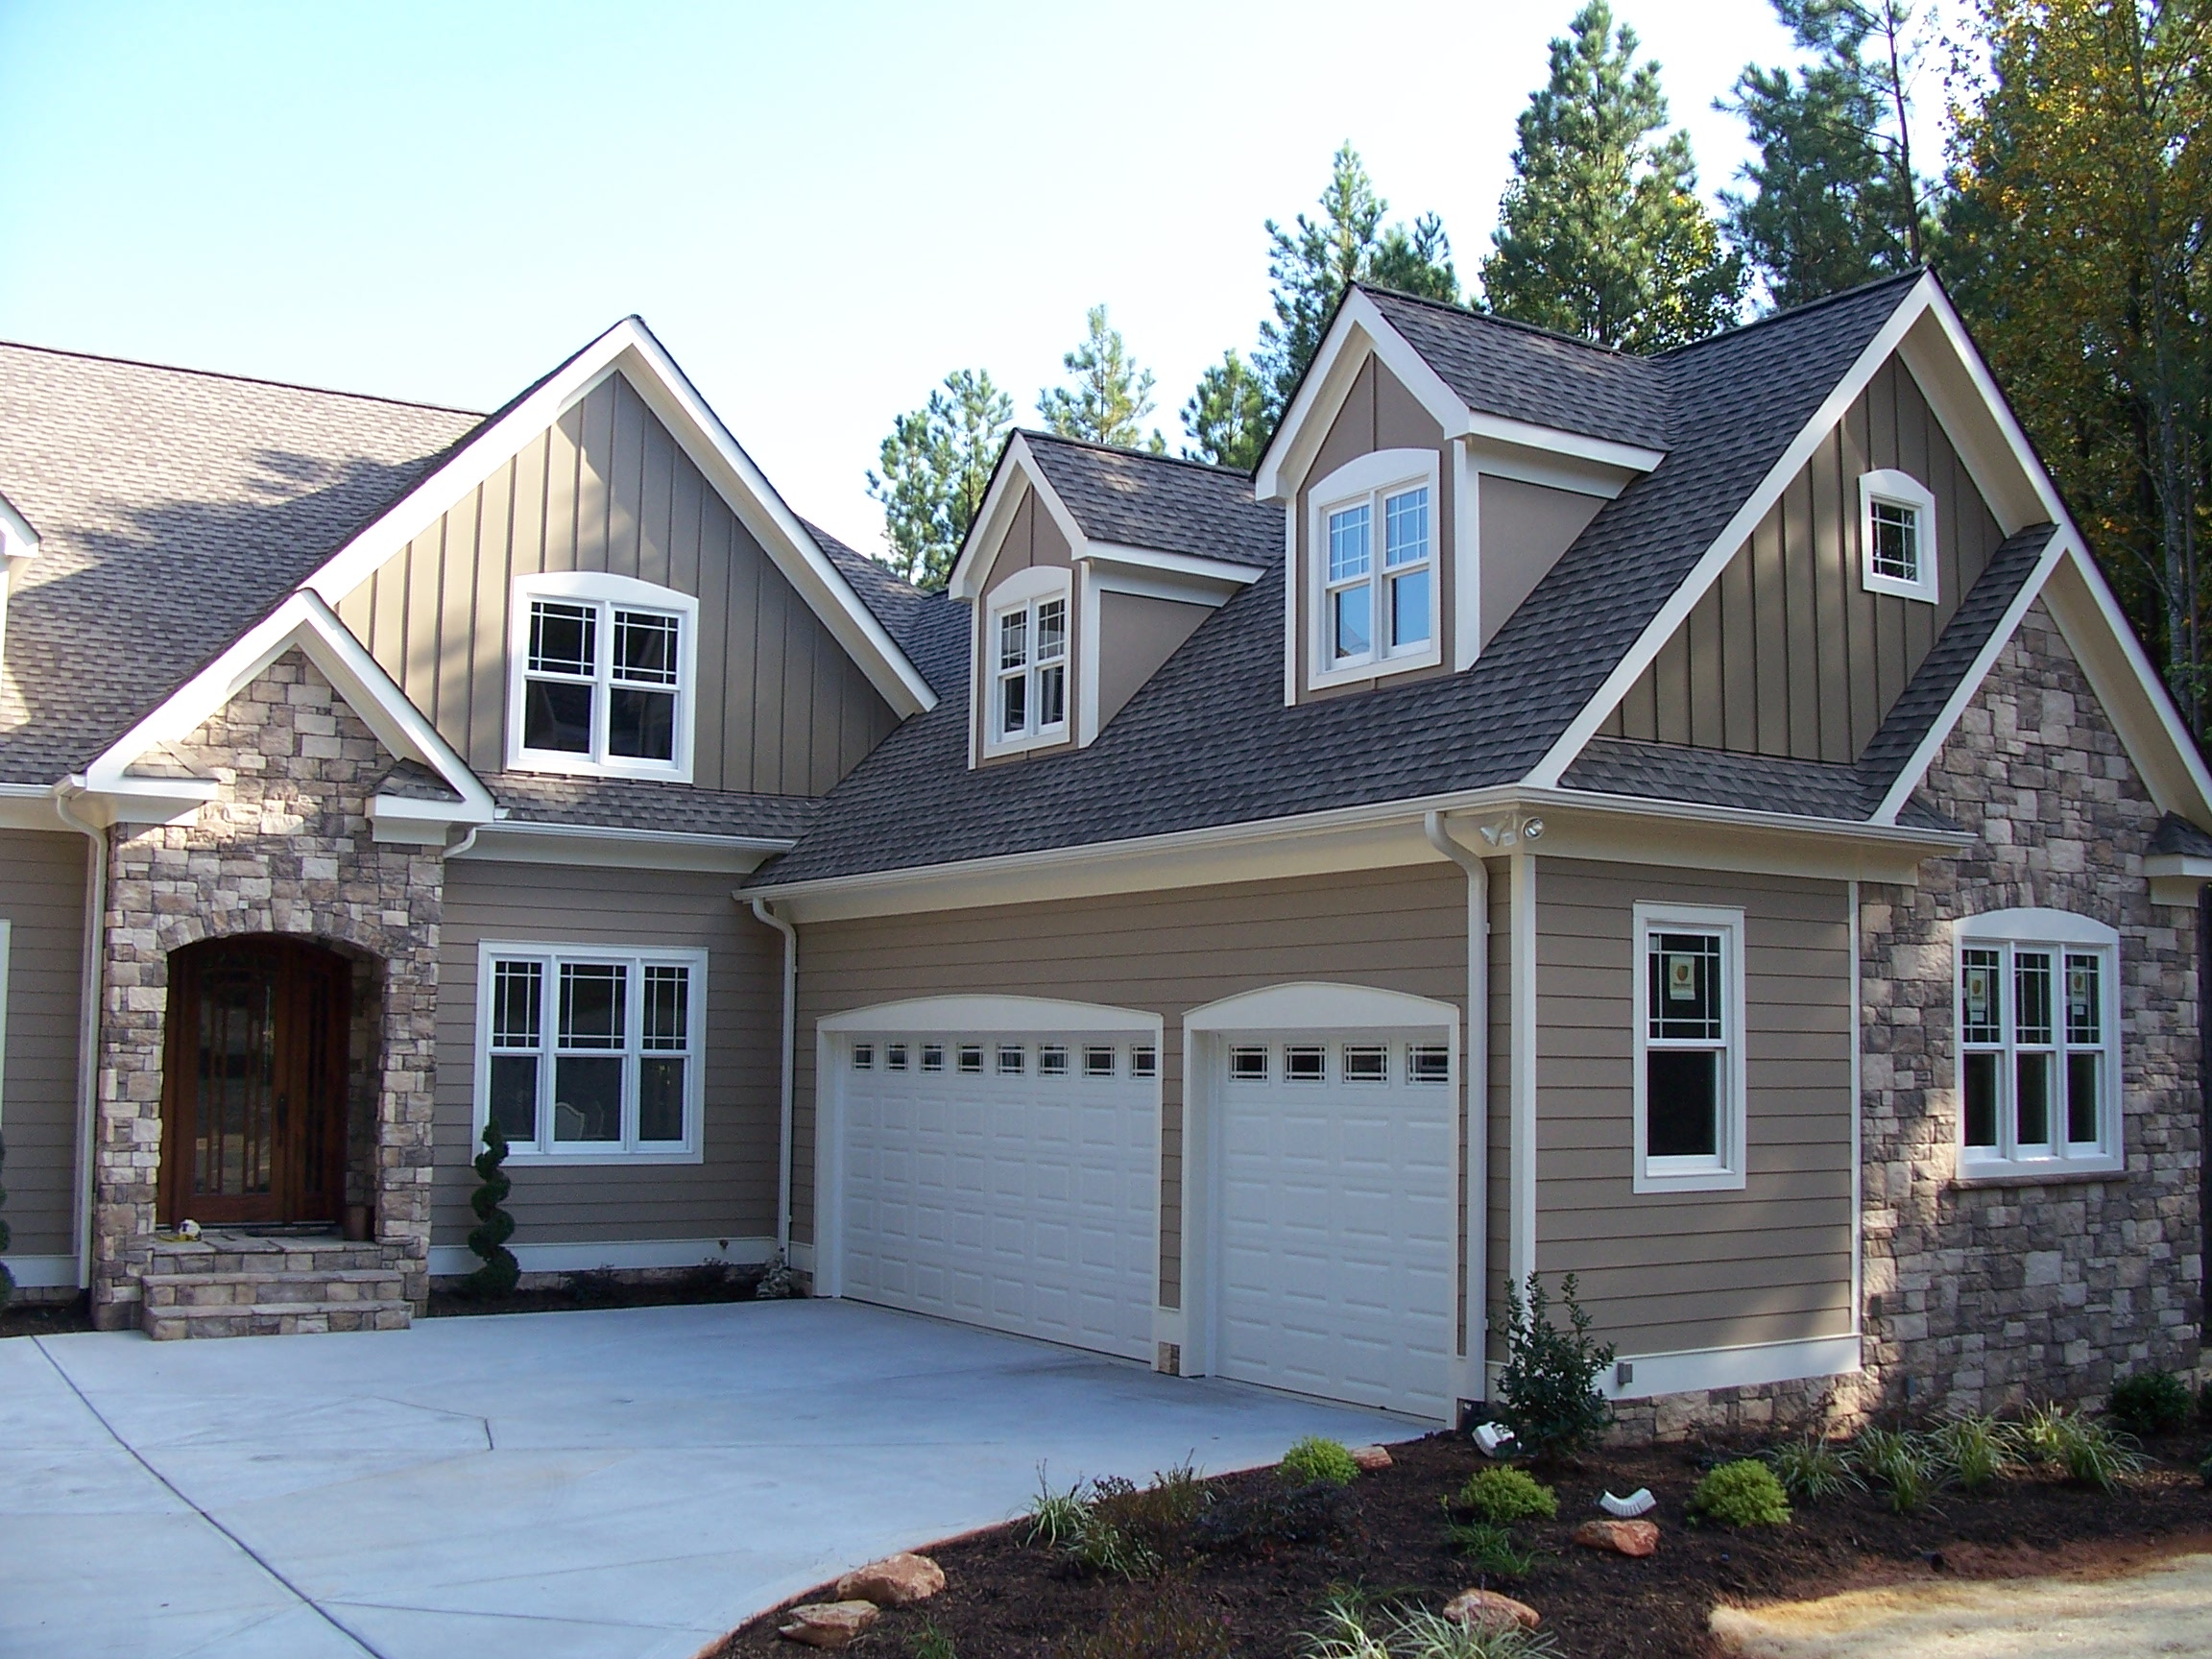 house color windows door garages road rocks - Exterior House Colors Grey